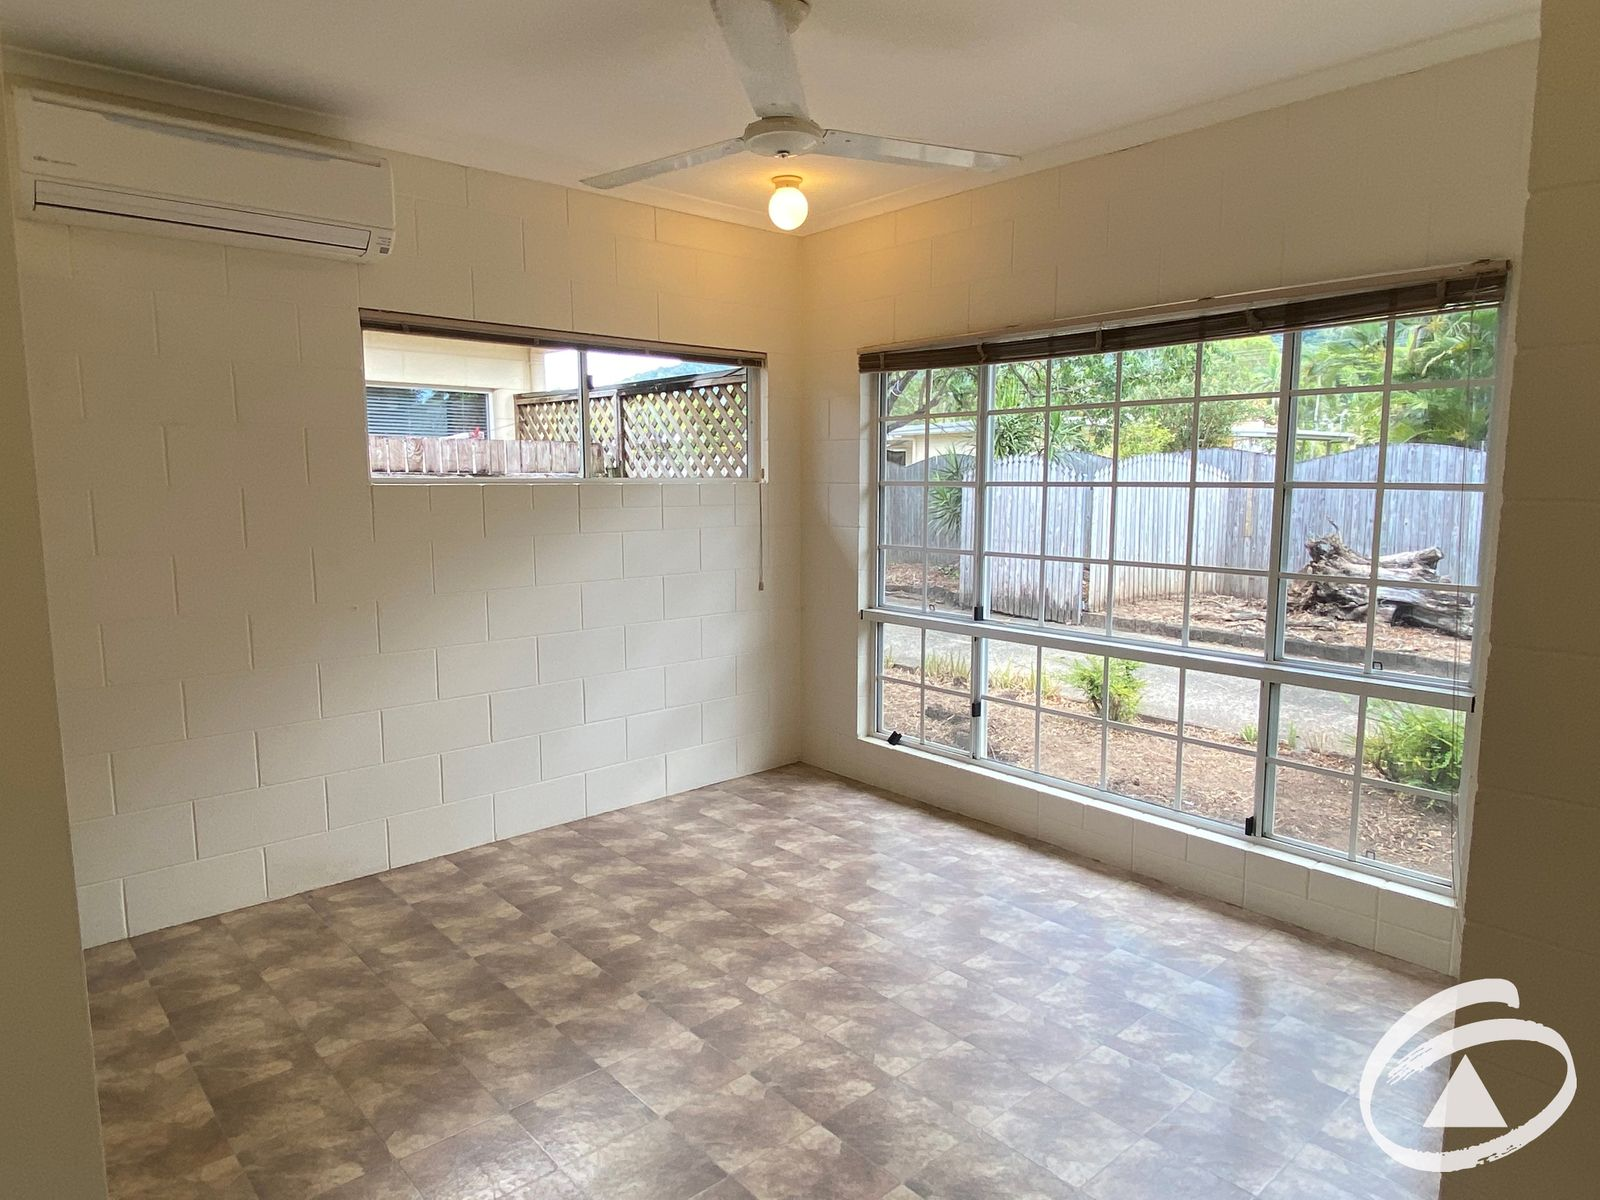 2/345 Mayers Street, Edge Hill, QLD 4870